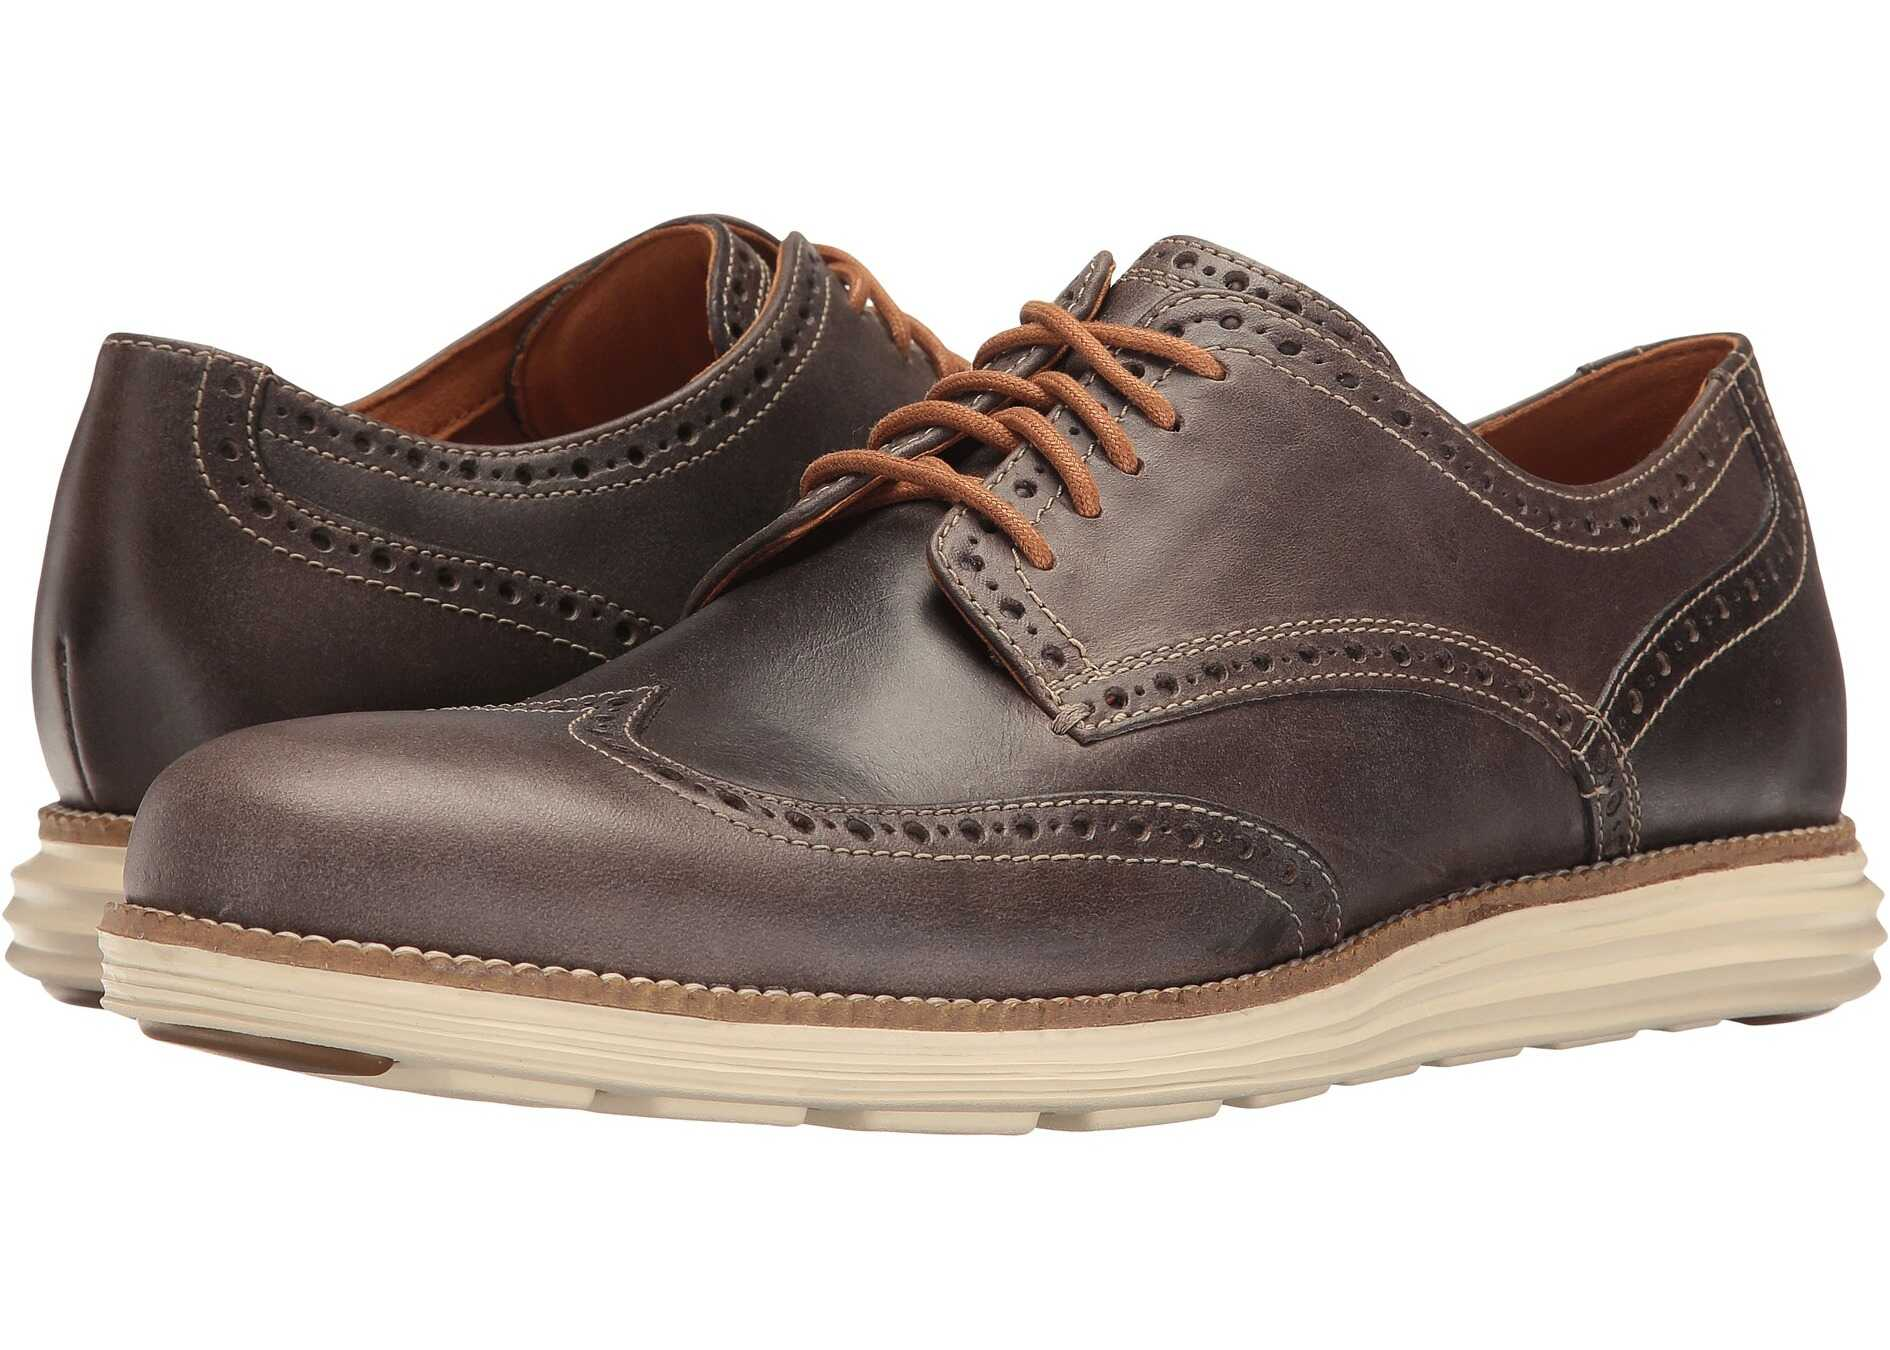 Cole Haan Original Grand Wing Oxford Sea Otter Leather/Ivory